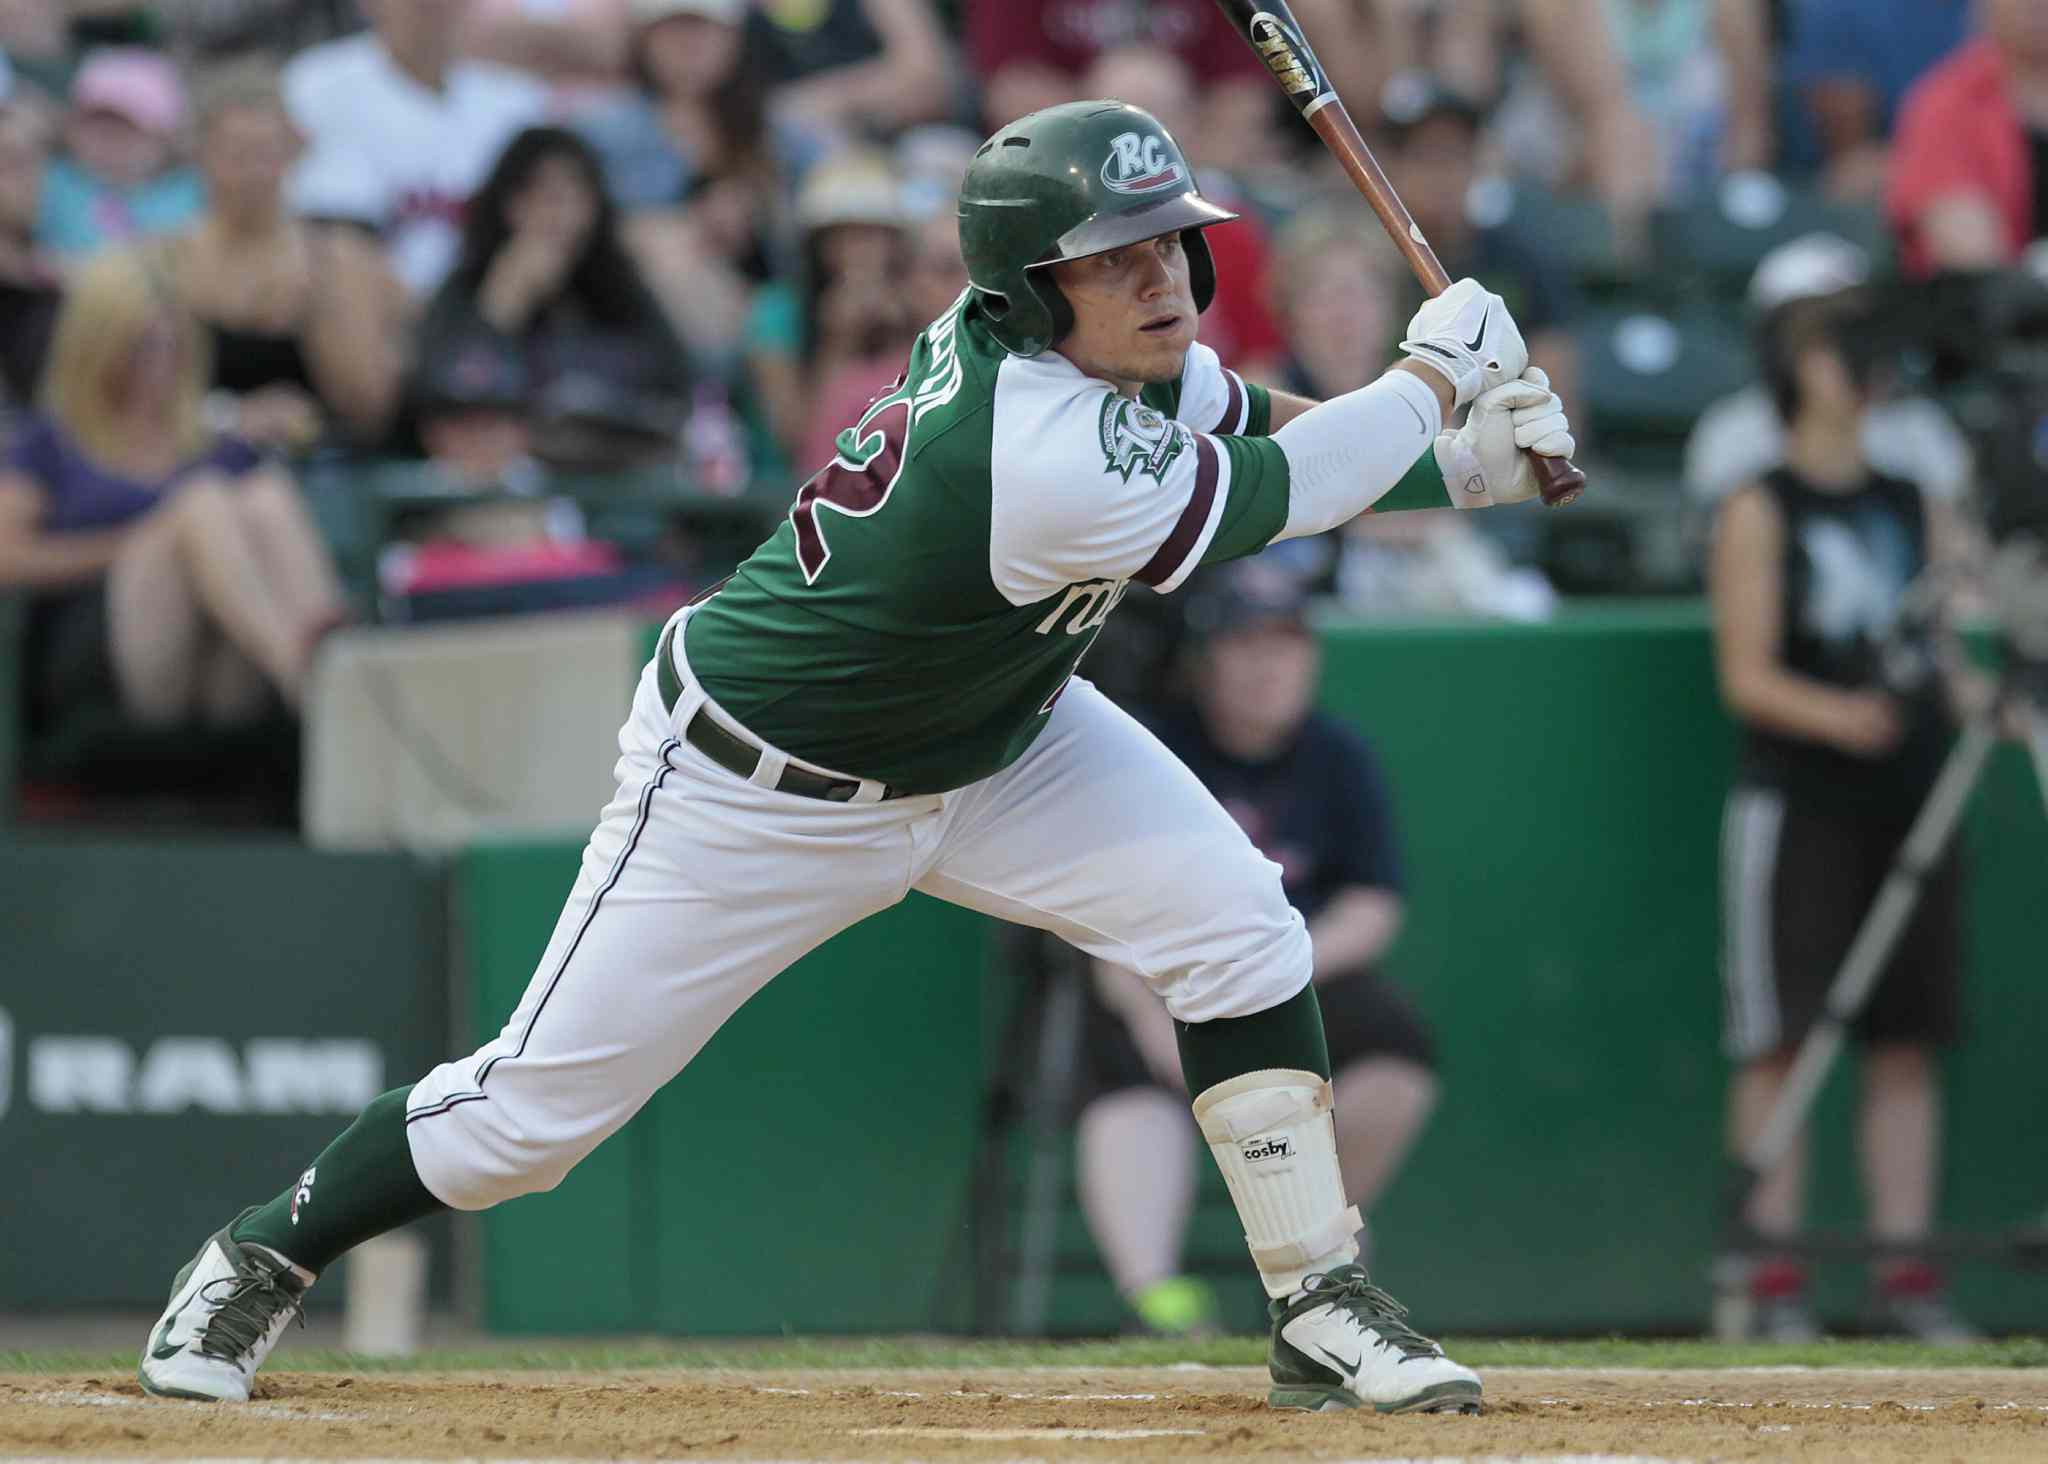 Gary SouthShore RailCats' Danny Pulfer hits in the 2014 American Association All-Star game in Winnipeg Tuesday.